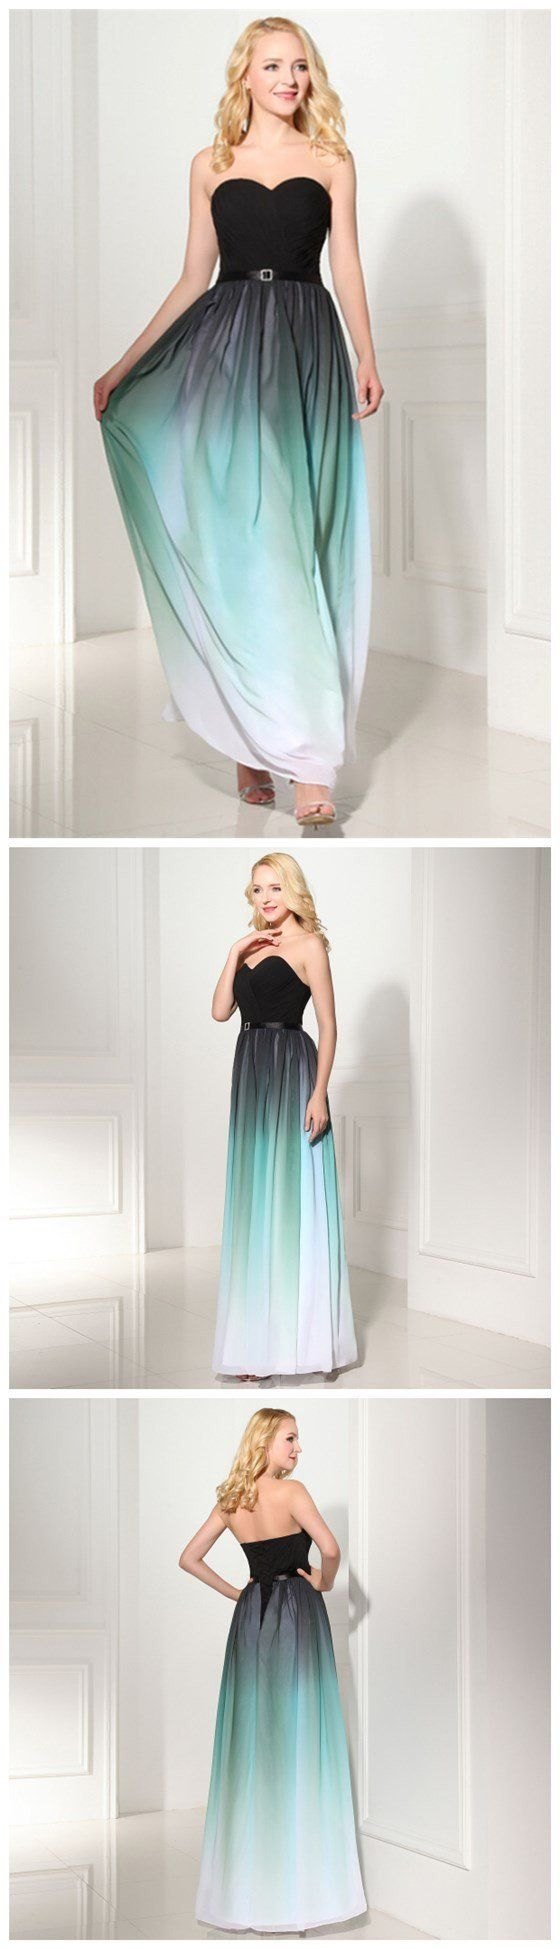 Chiffon Gradient Cheap Custom Popular Simple Evening Long Prom Dresses Long Prom Dress by DestinyDress, $225.00 USD